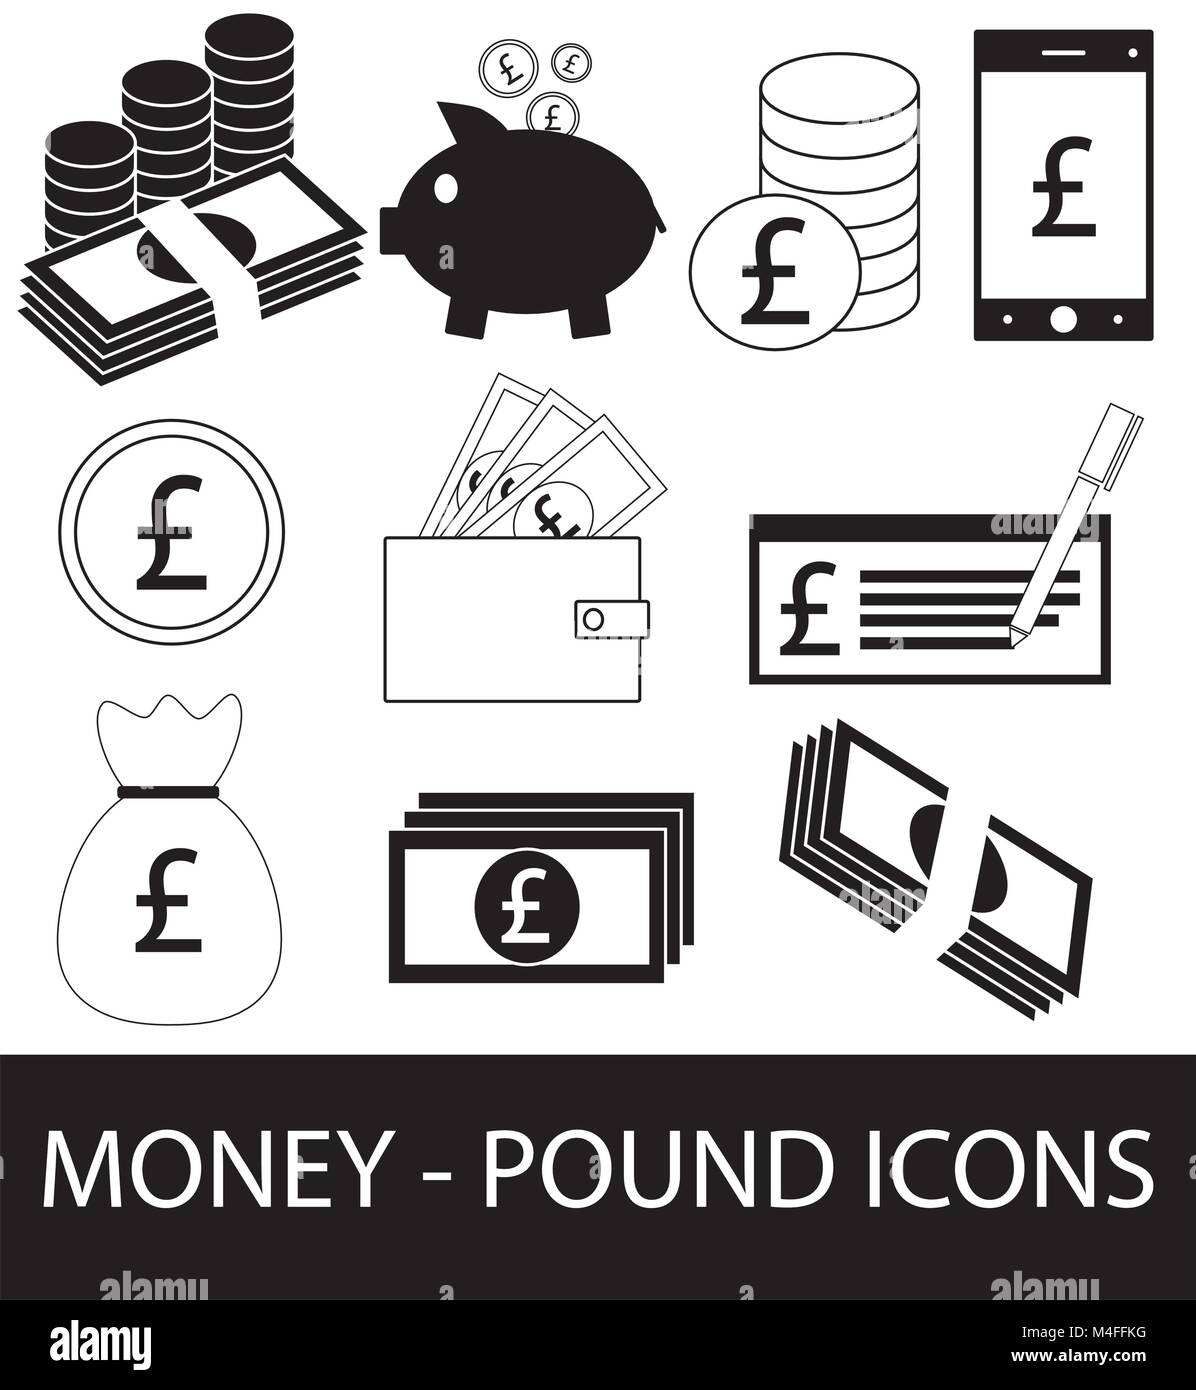 Set, collection or pack of Pound currency icon or logo. Coins, notes or bills, cell or mobile phone, wallet or check. - Stock Image